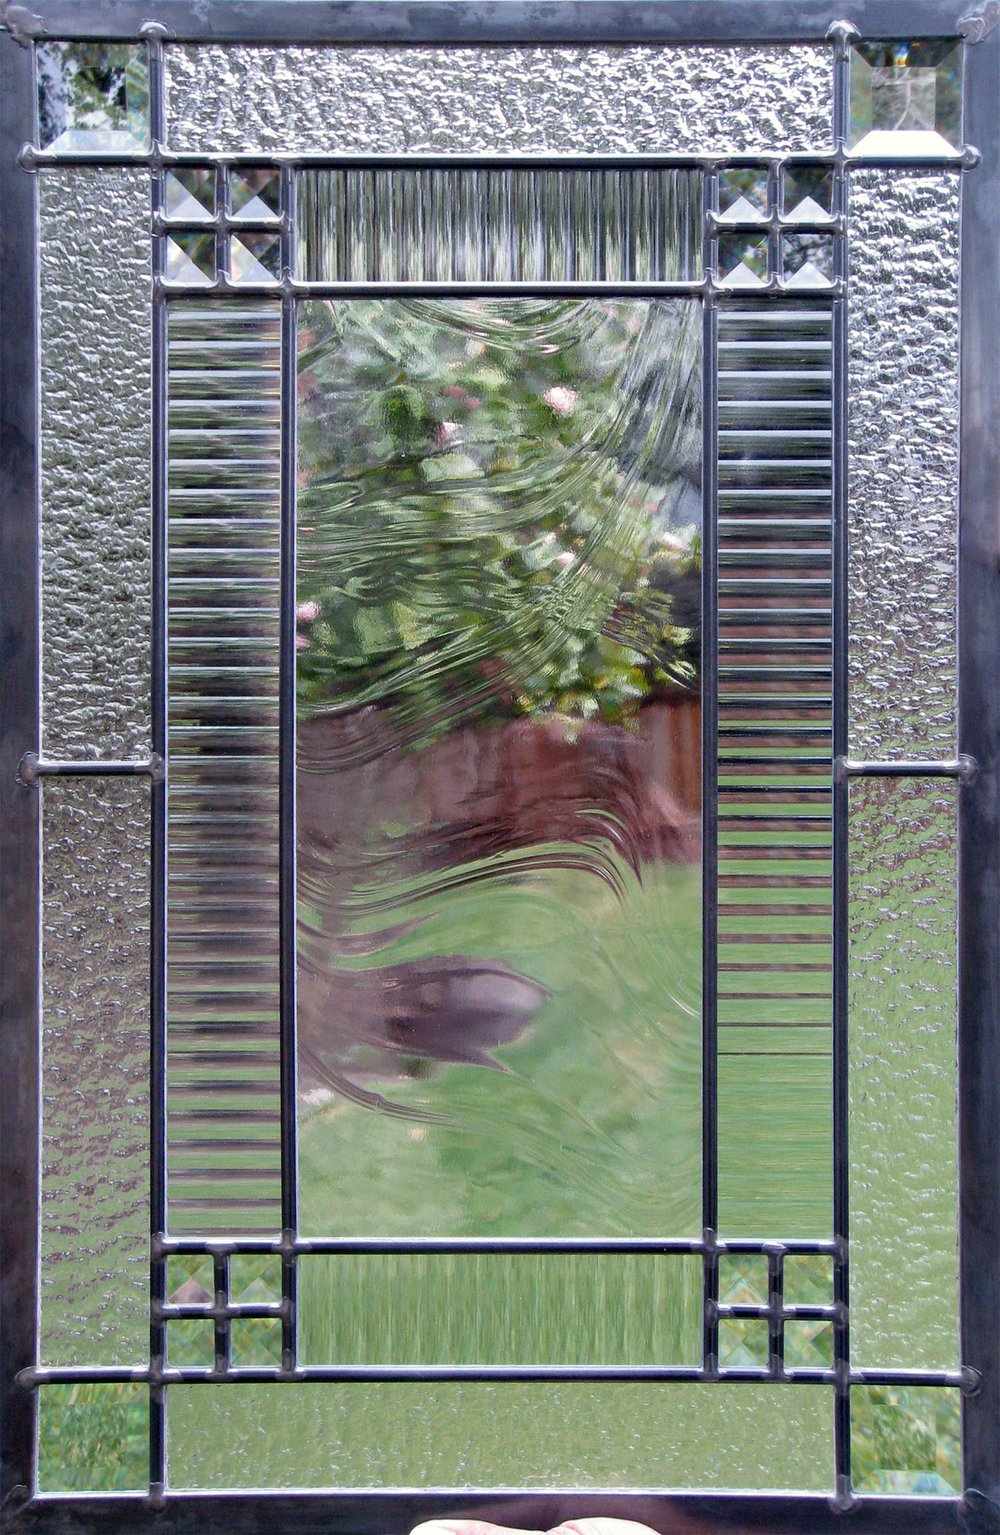 clear texture baroque corded granite glass leaded glass stained glass window palo alto atherton california san francisco san jose legacy glass.jpg